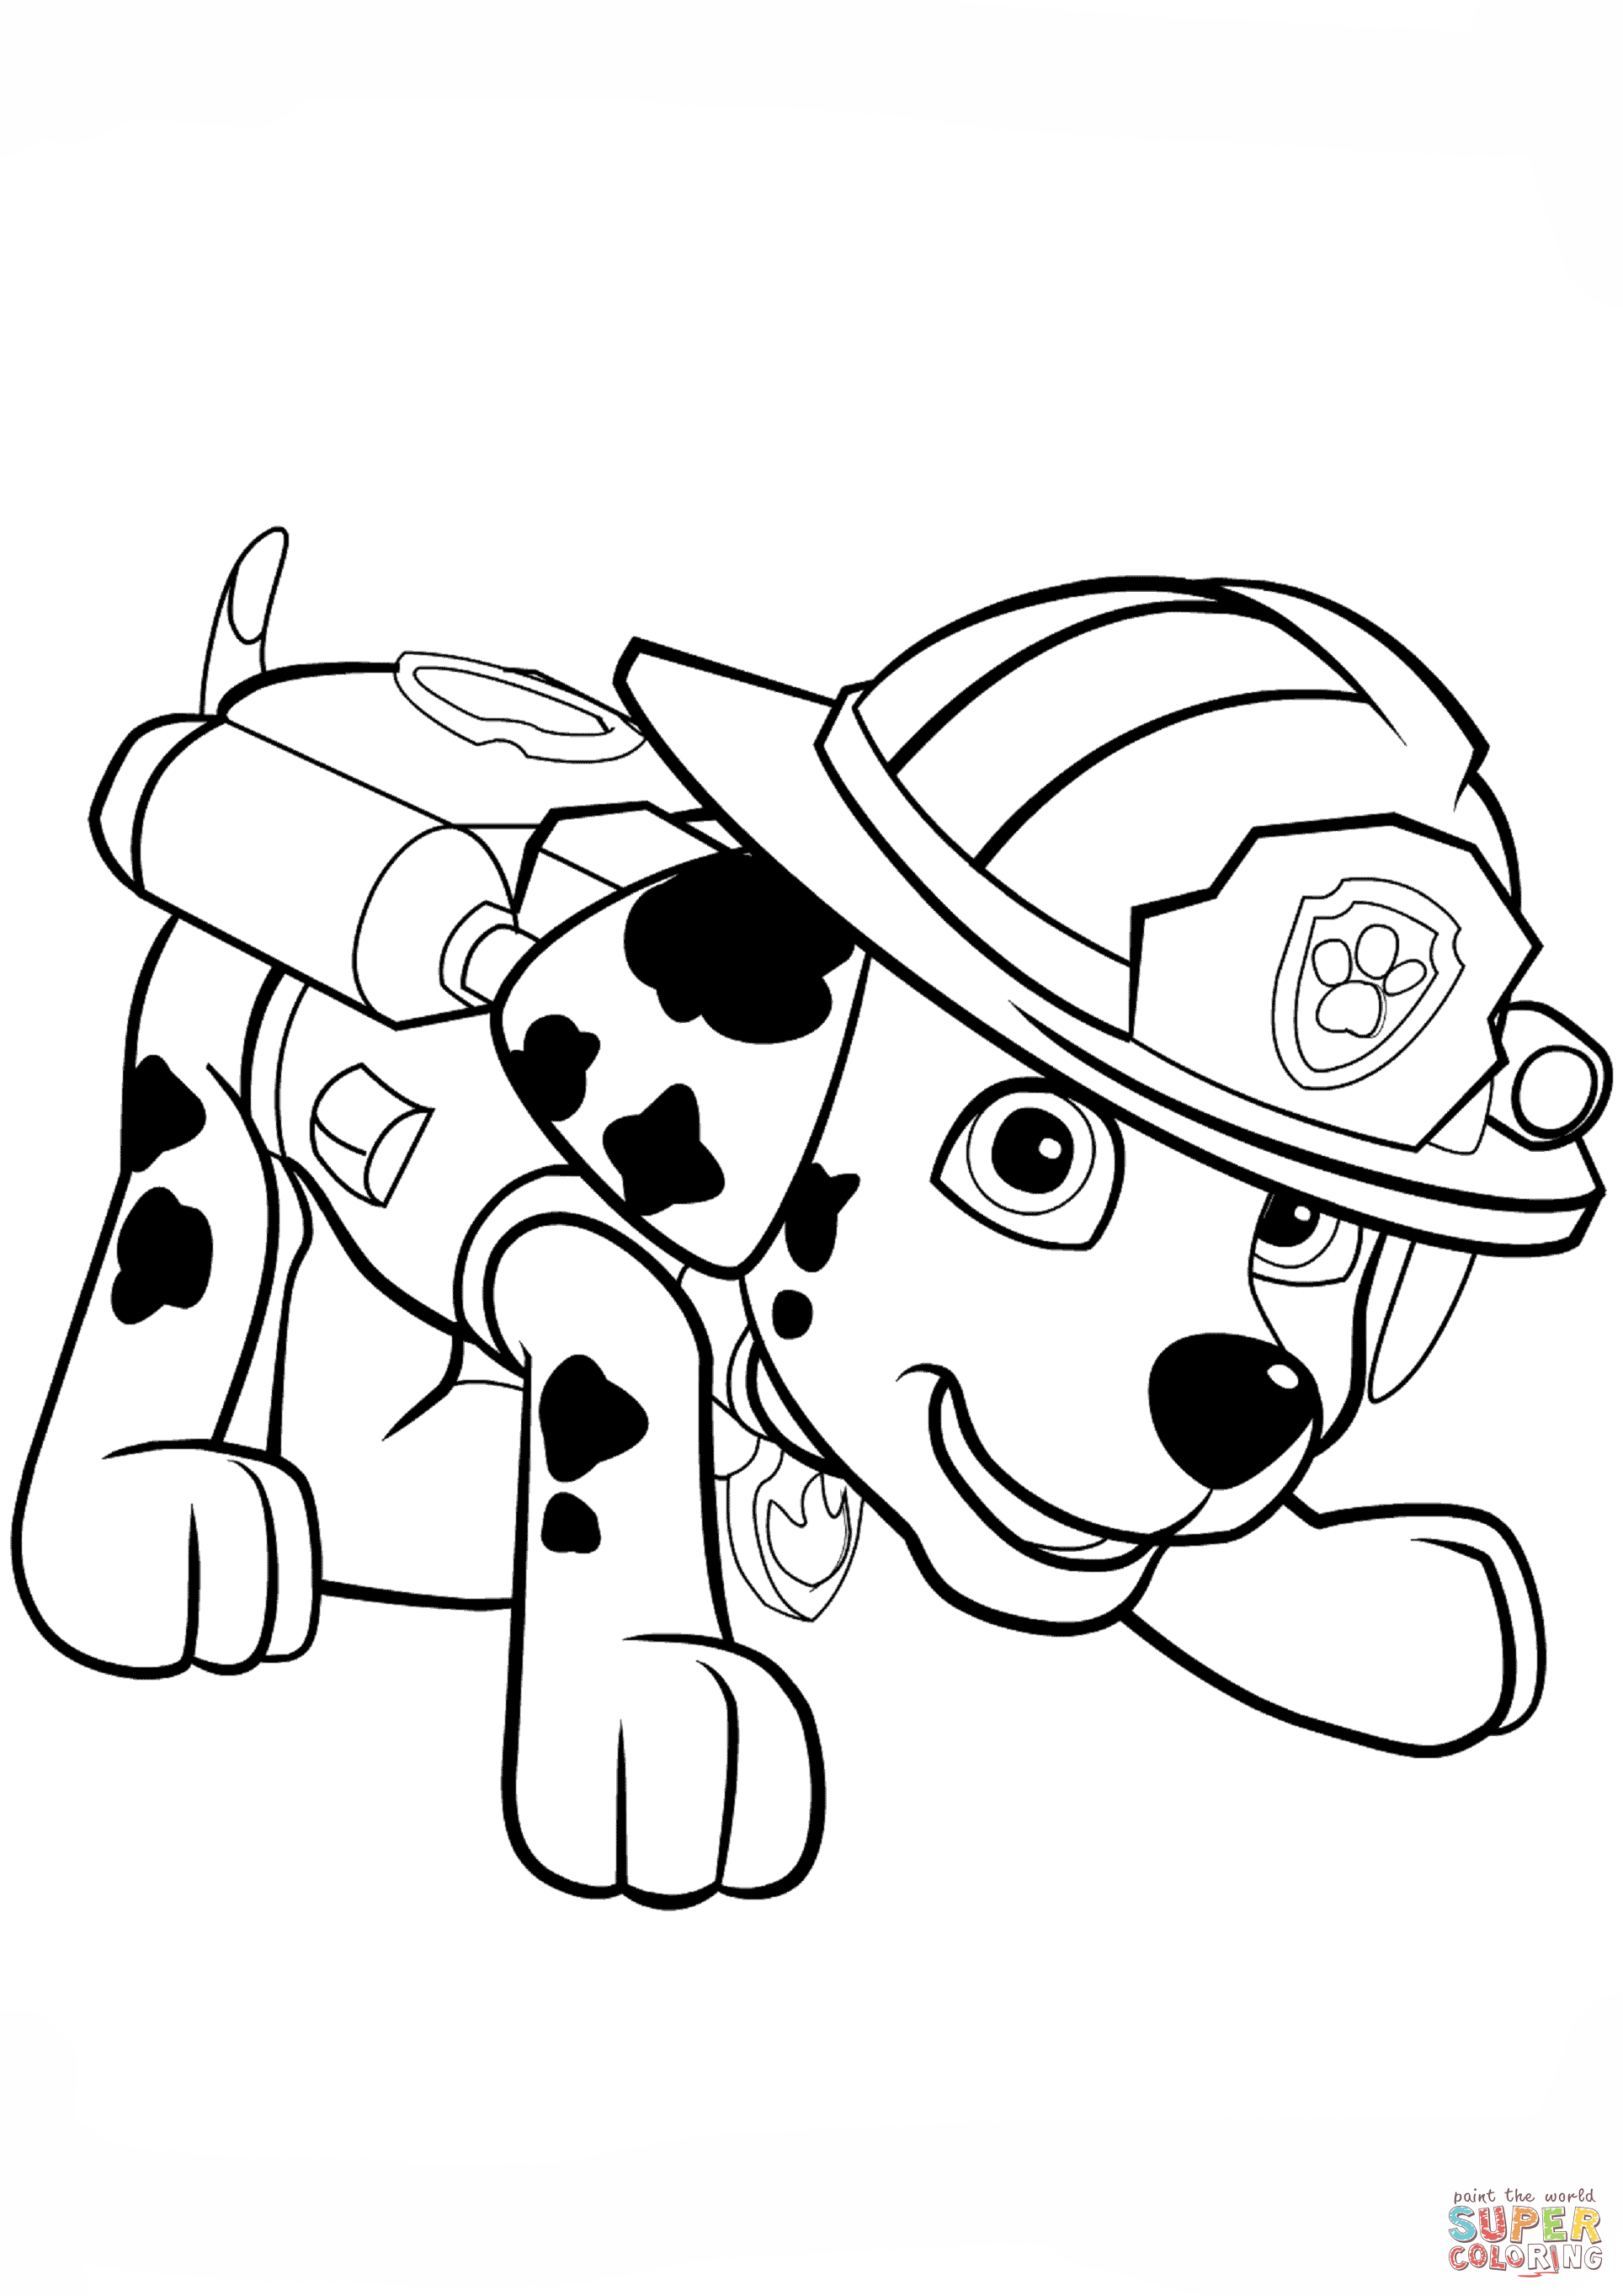 Paw Patrol Tracker Coloring Pages at GetDrawings | Free ...